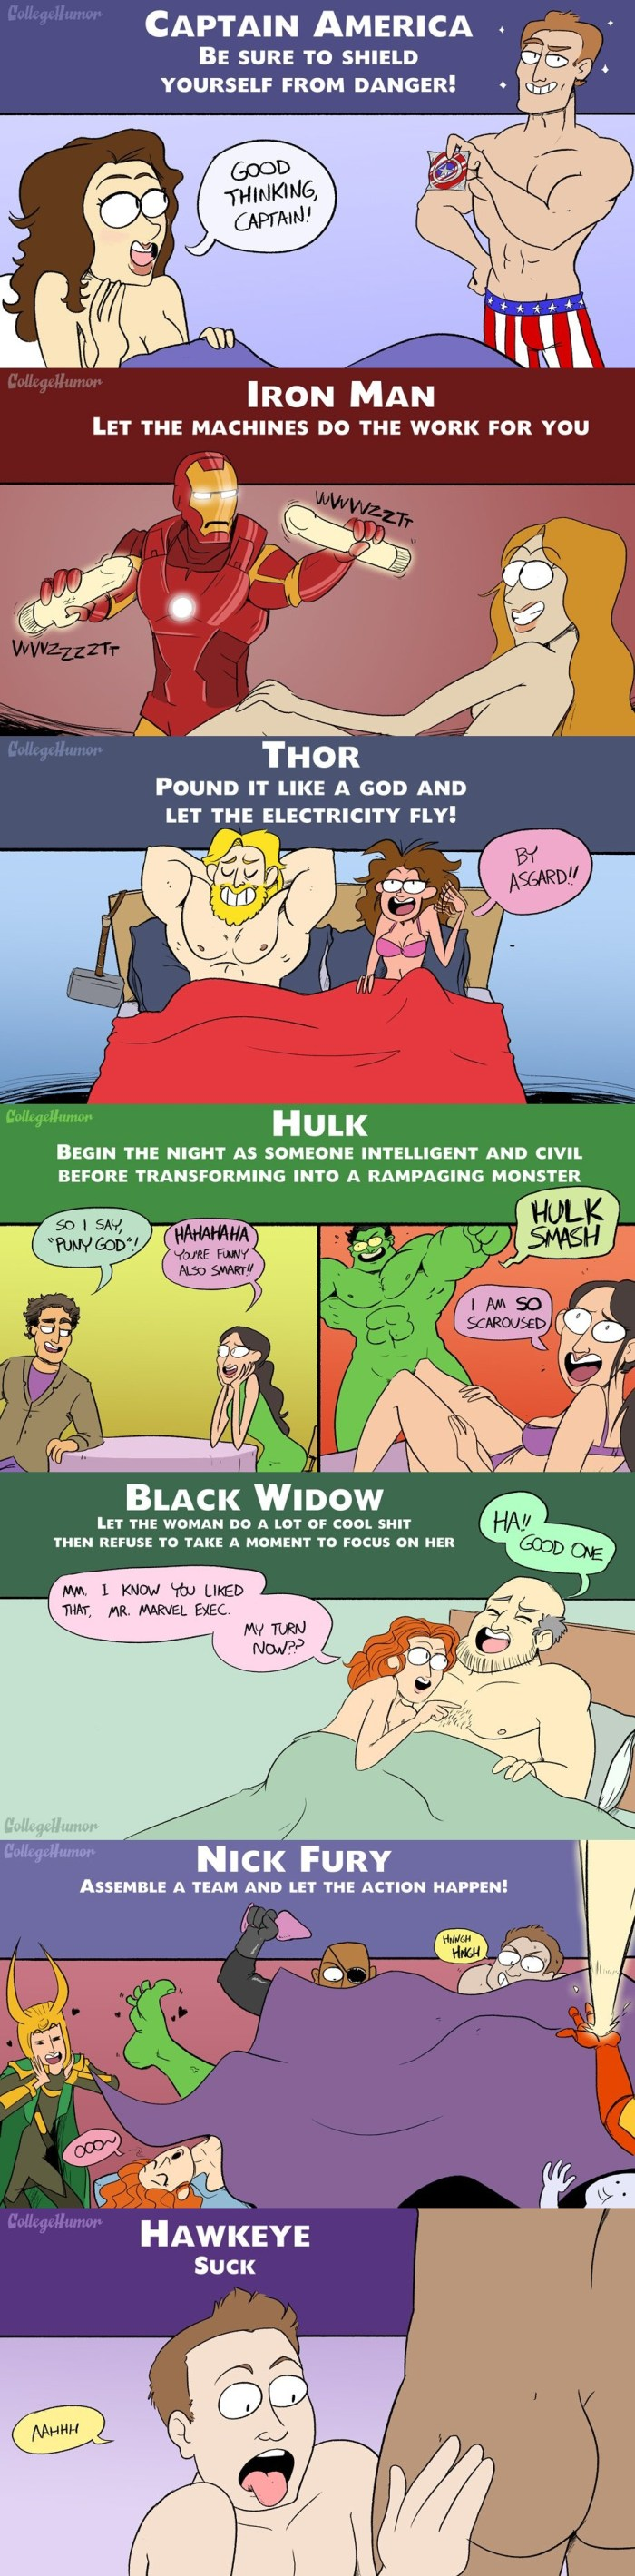 The Avengers in Bed.jpeg